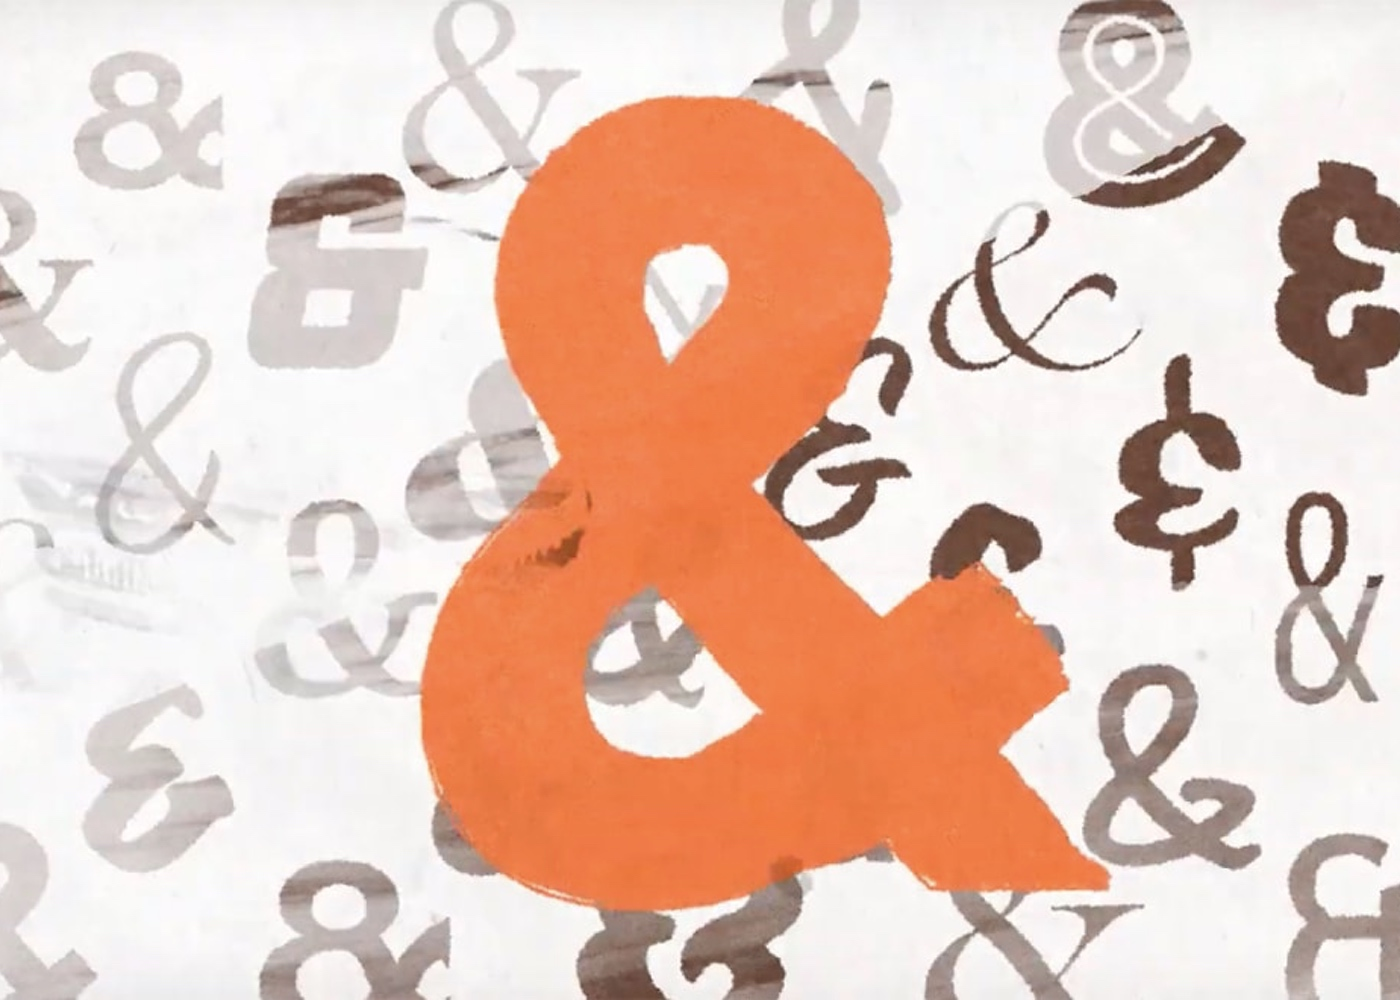 large orange ampersand with brown ampersands in the background